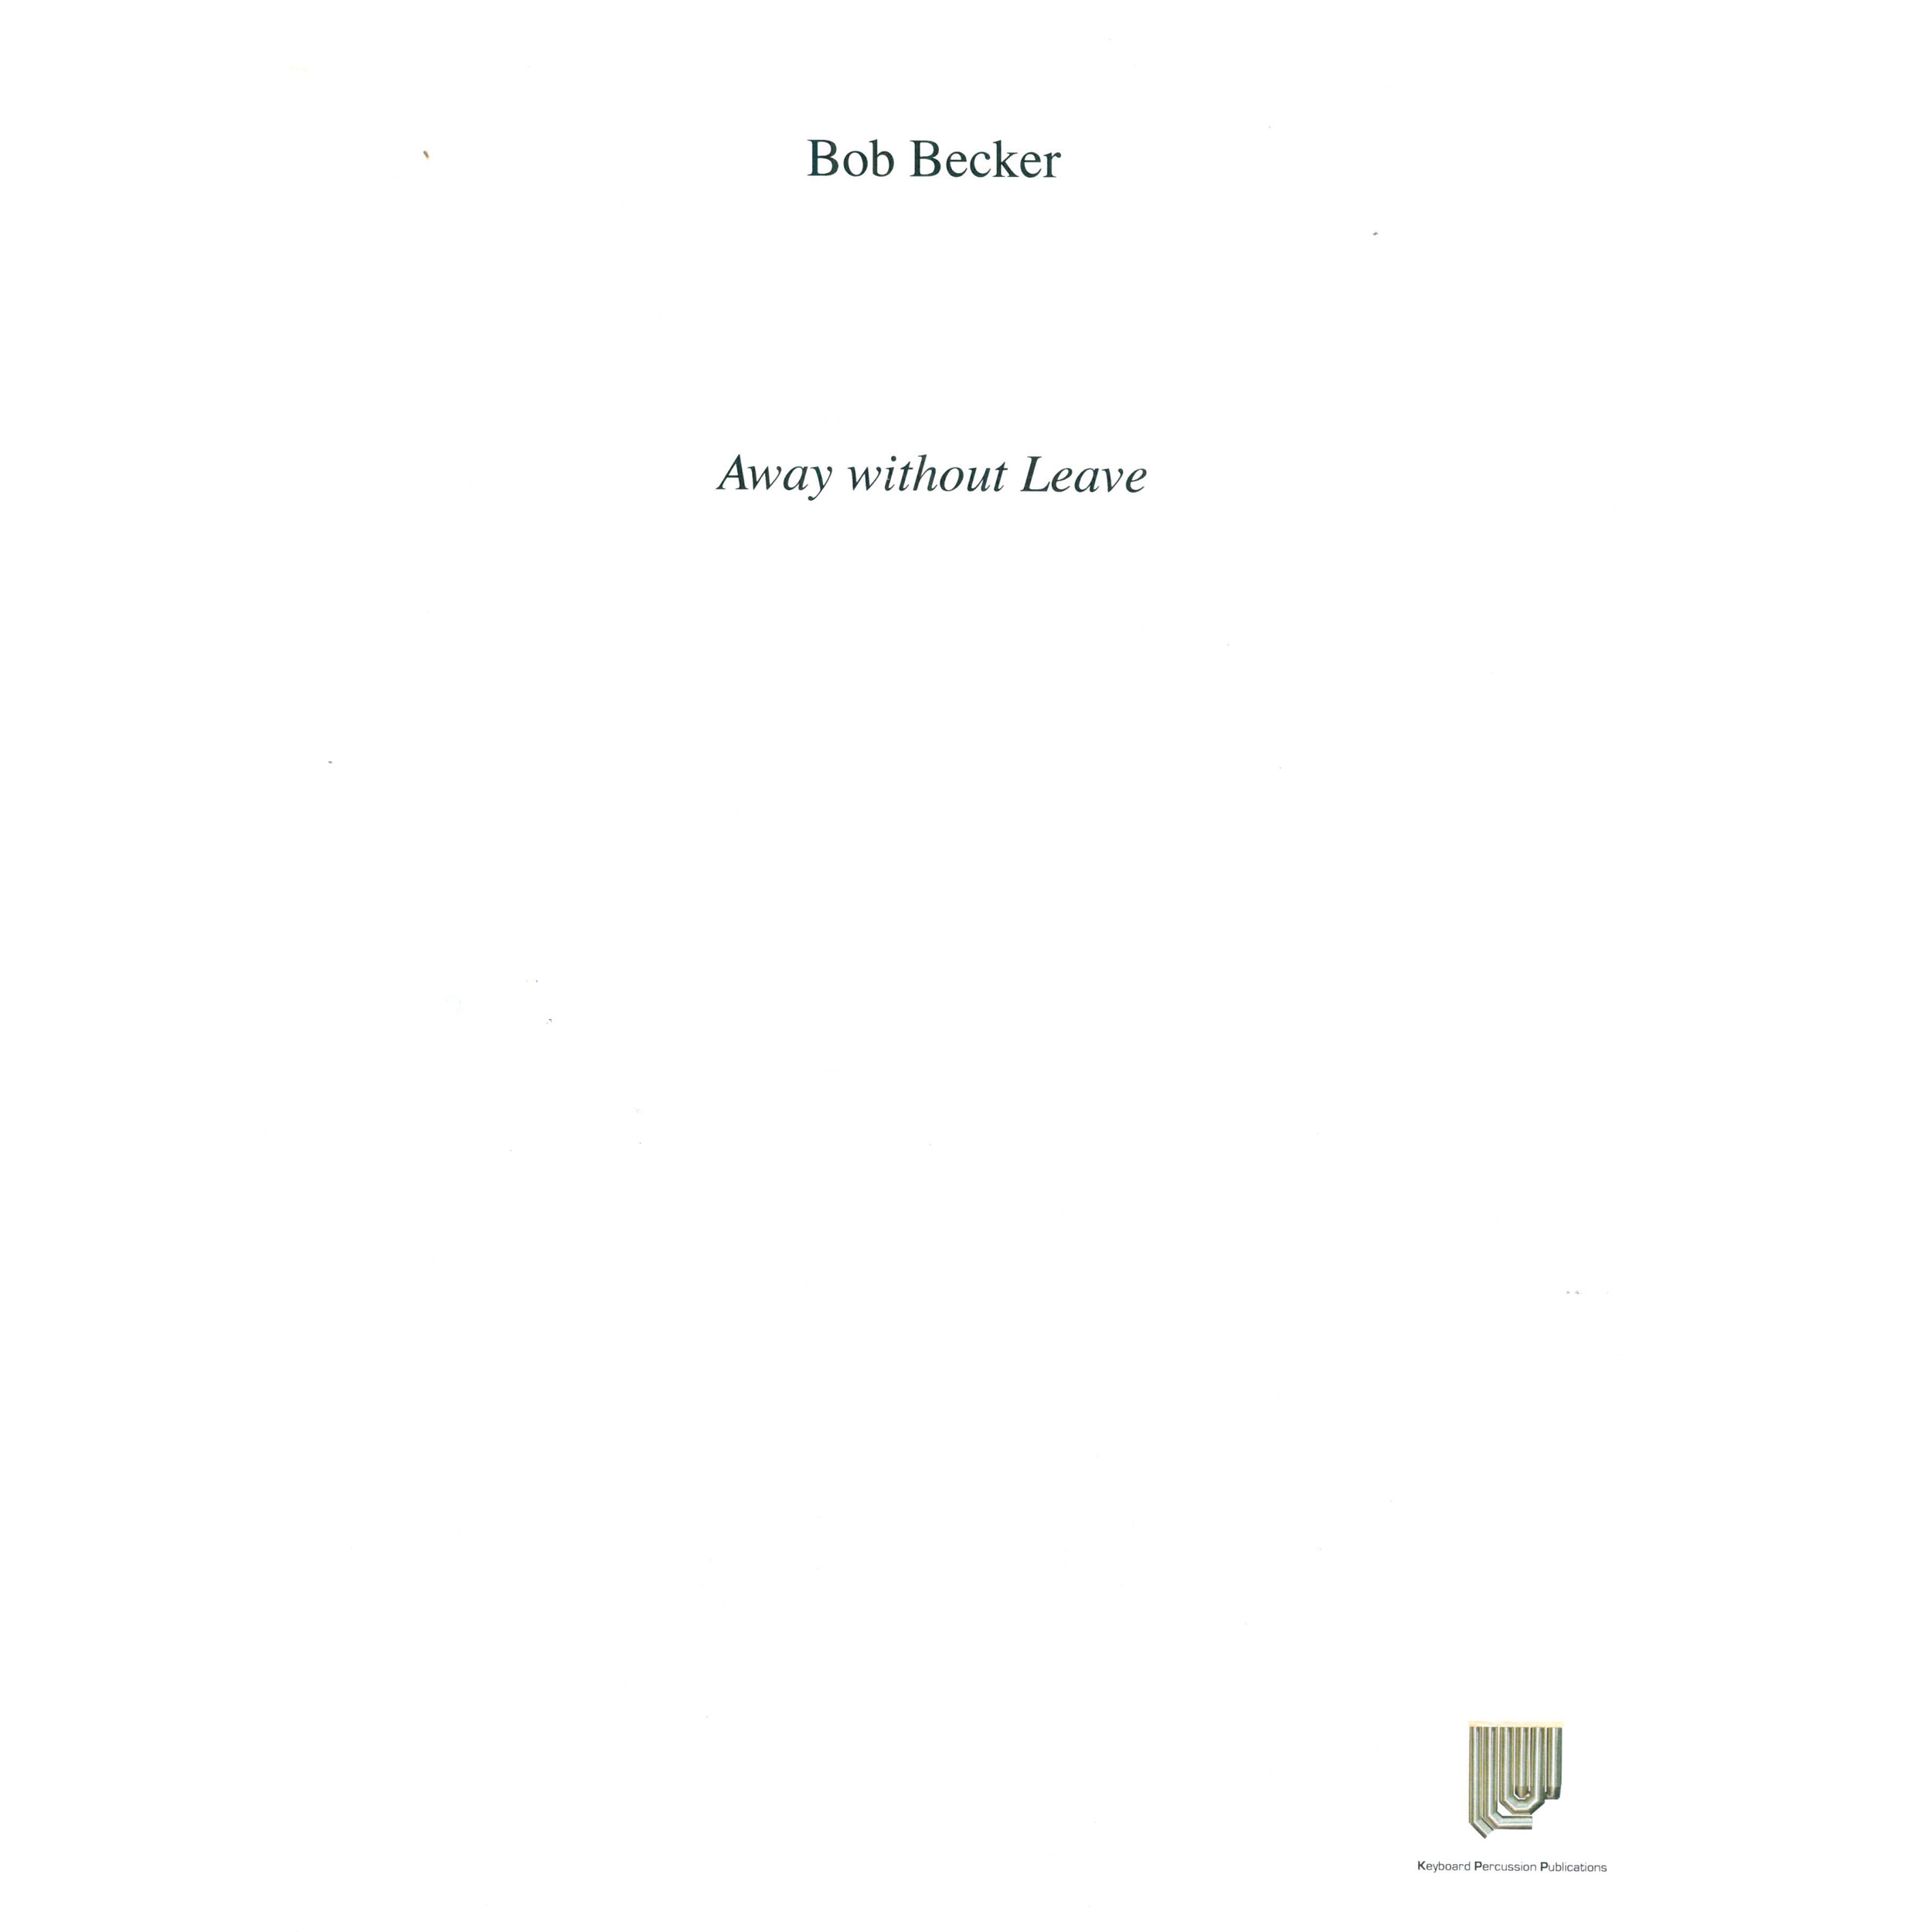 Away Without Leave by Bob Becker